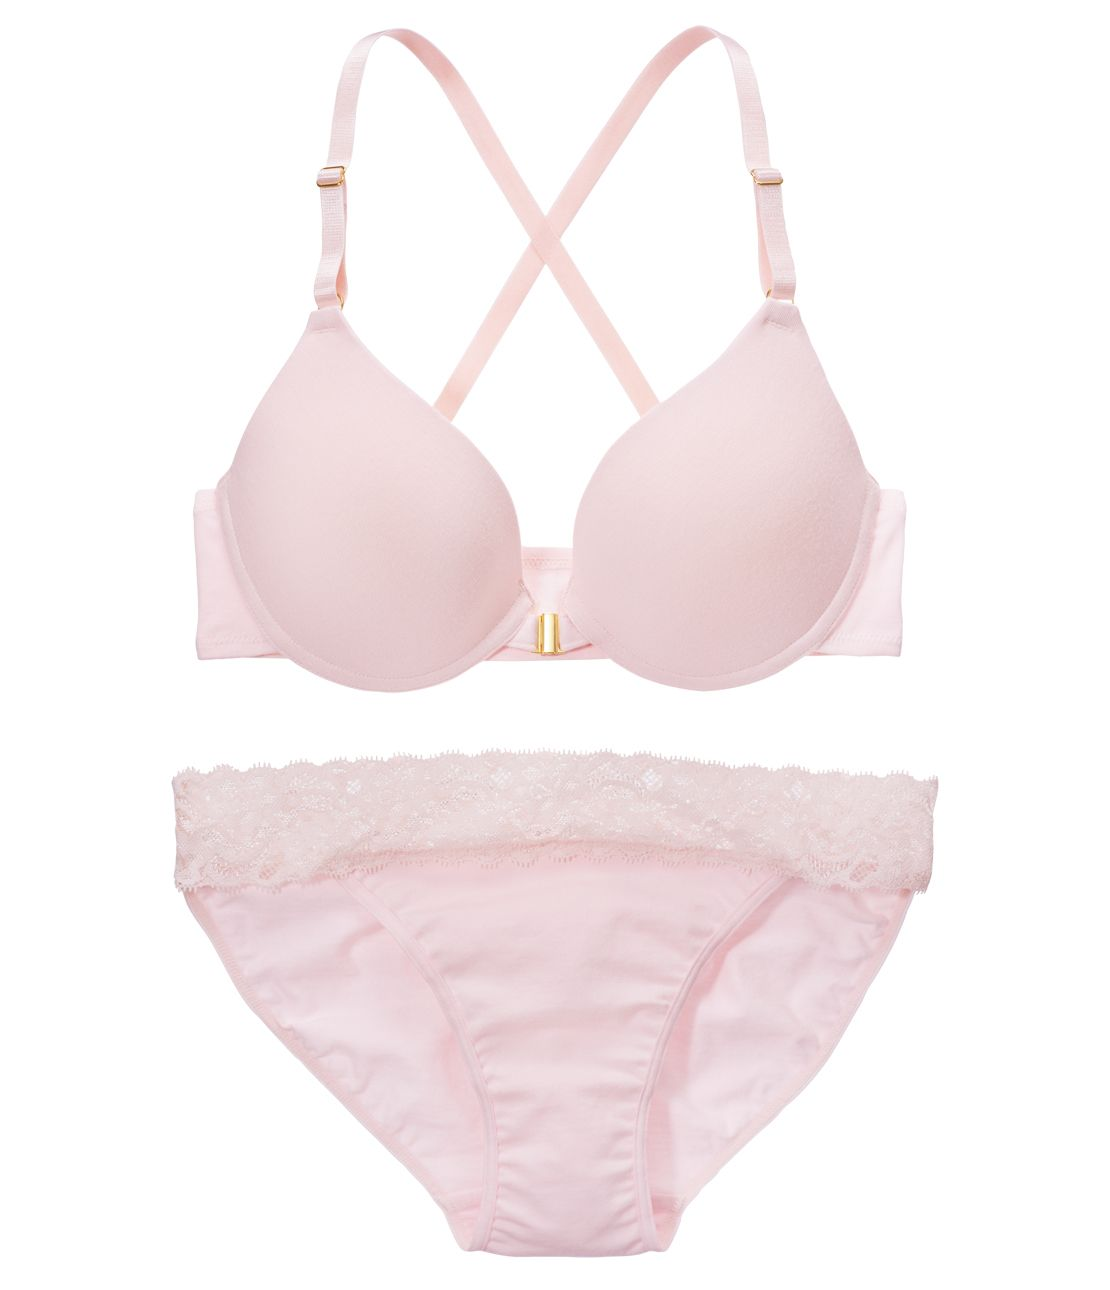 YM NEW simple back cross Bra Set